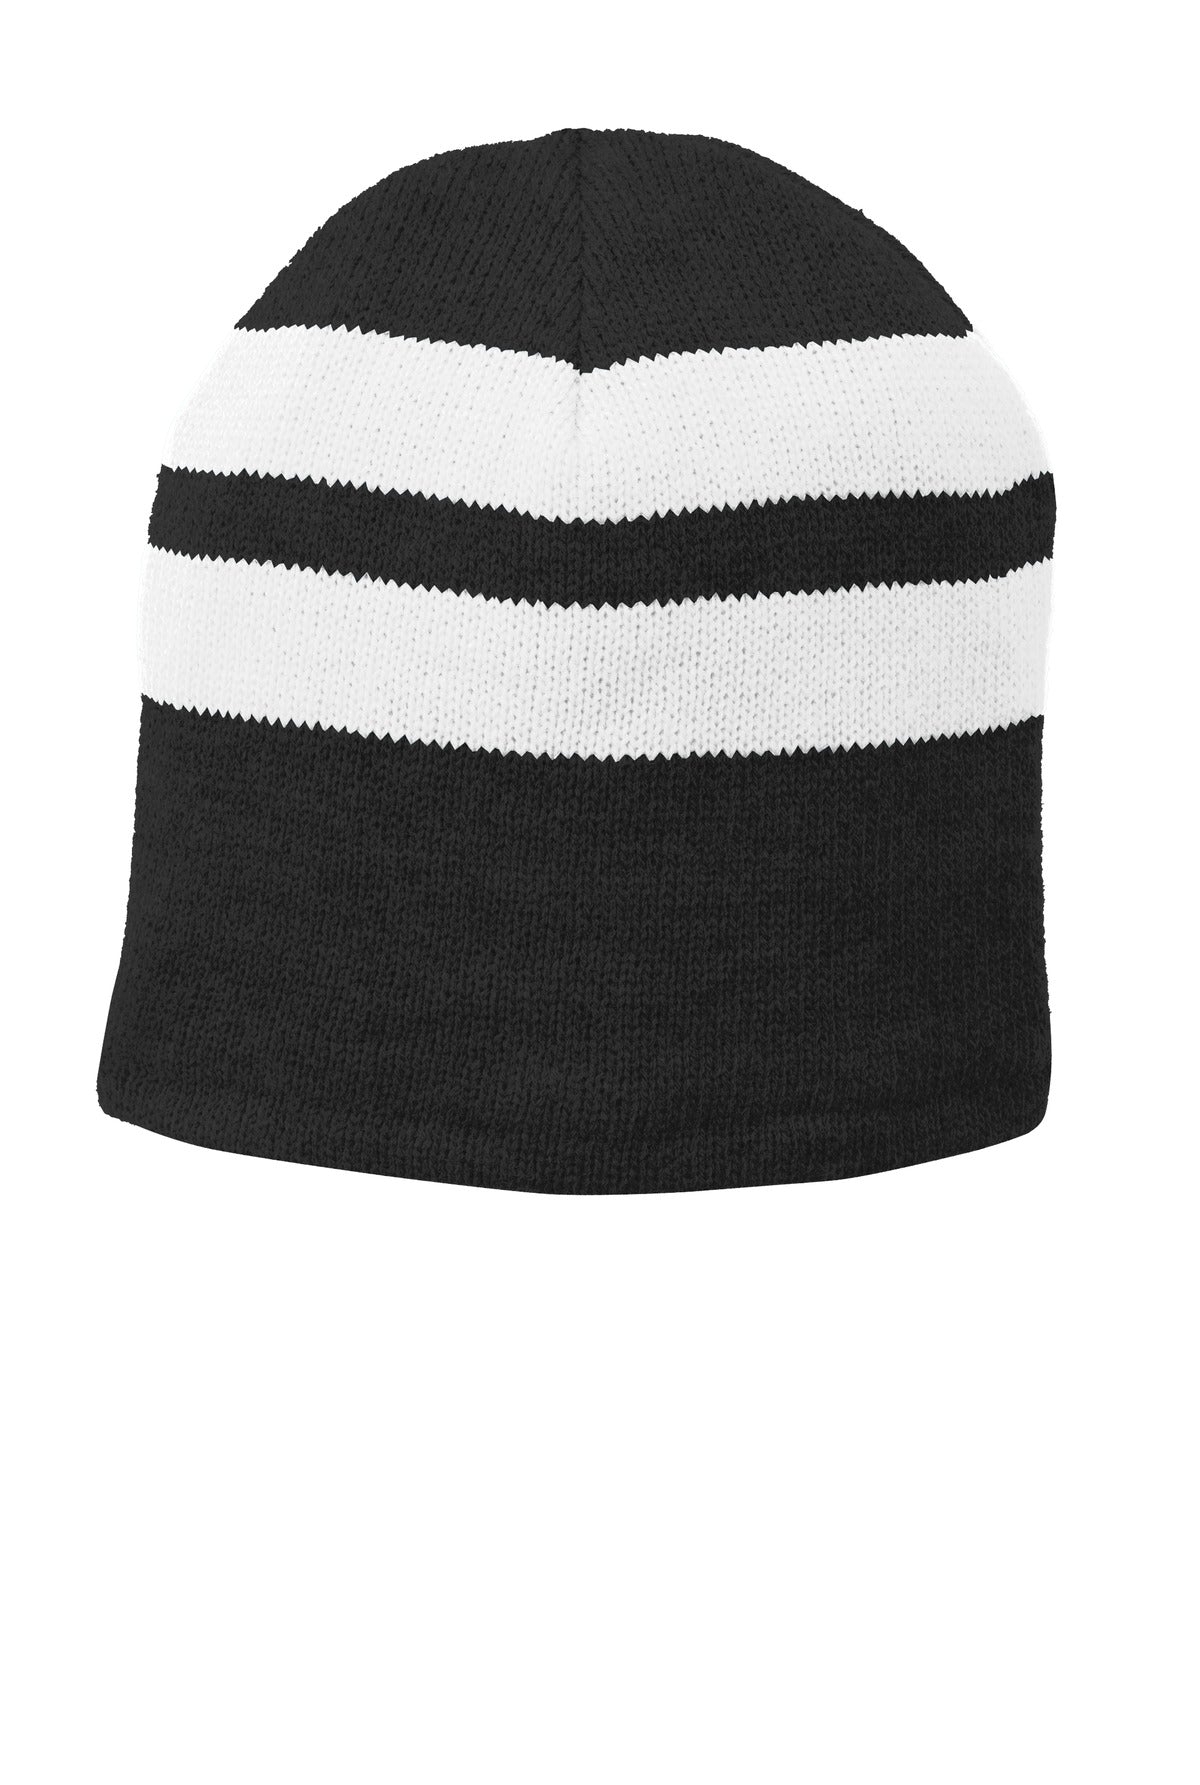 Port & Company® Fleece-Lined Striped Beanie Cap. C922